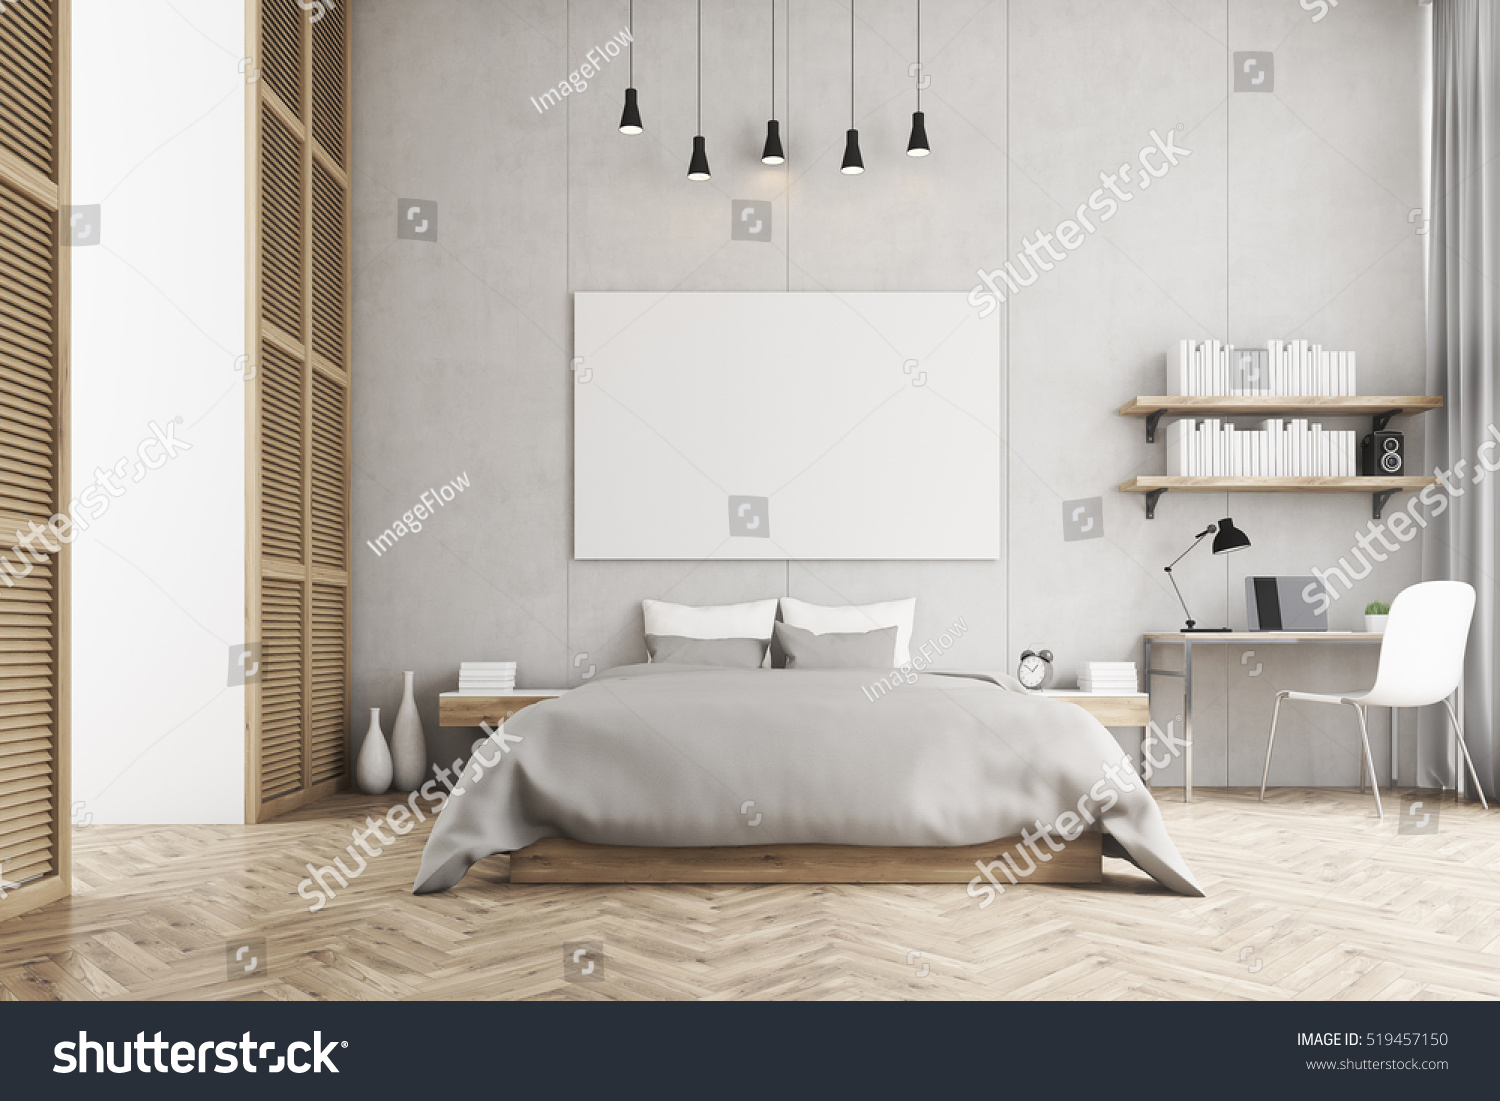 Front View Bedroom King Size Bed Stock Illustration 519457150